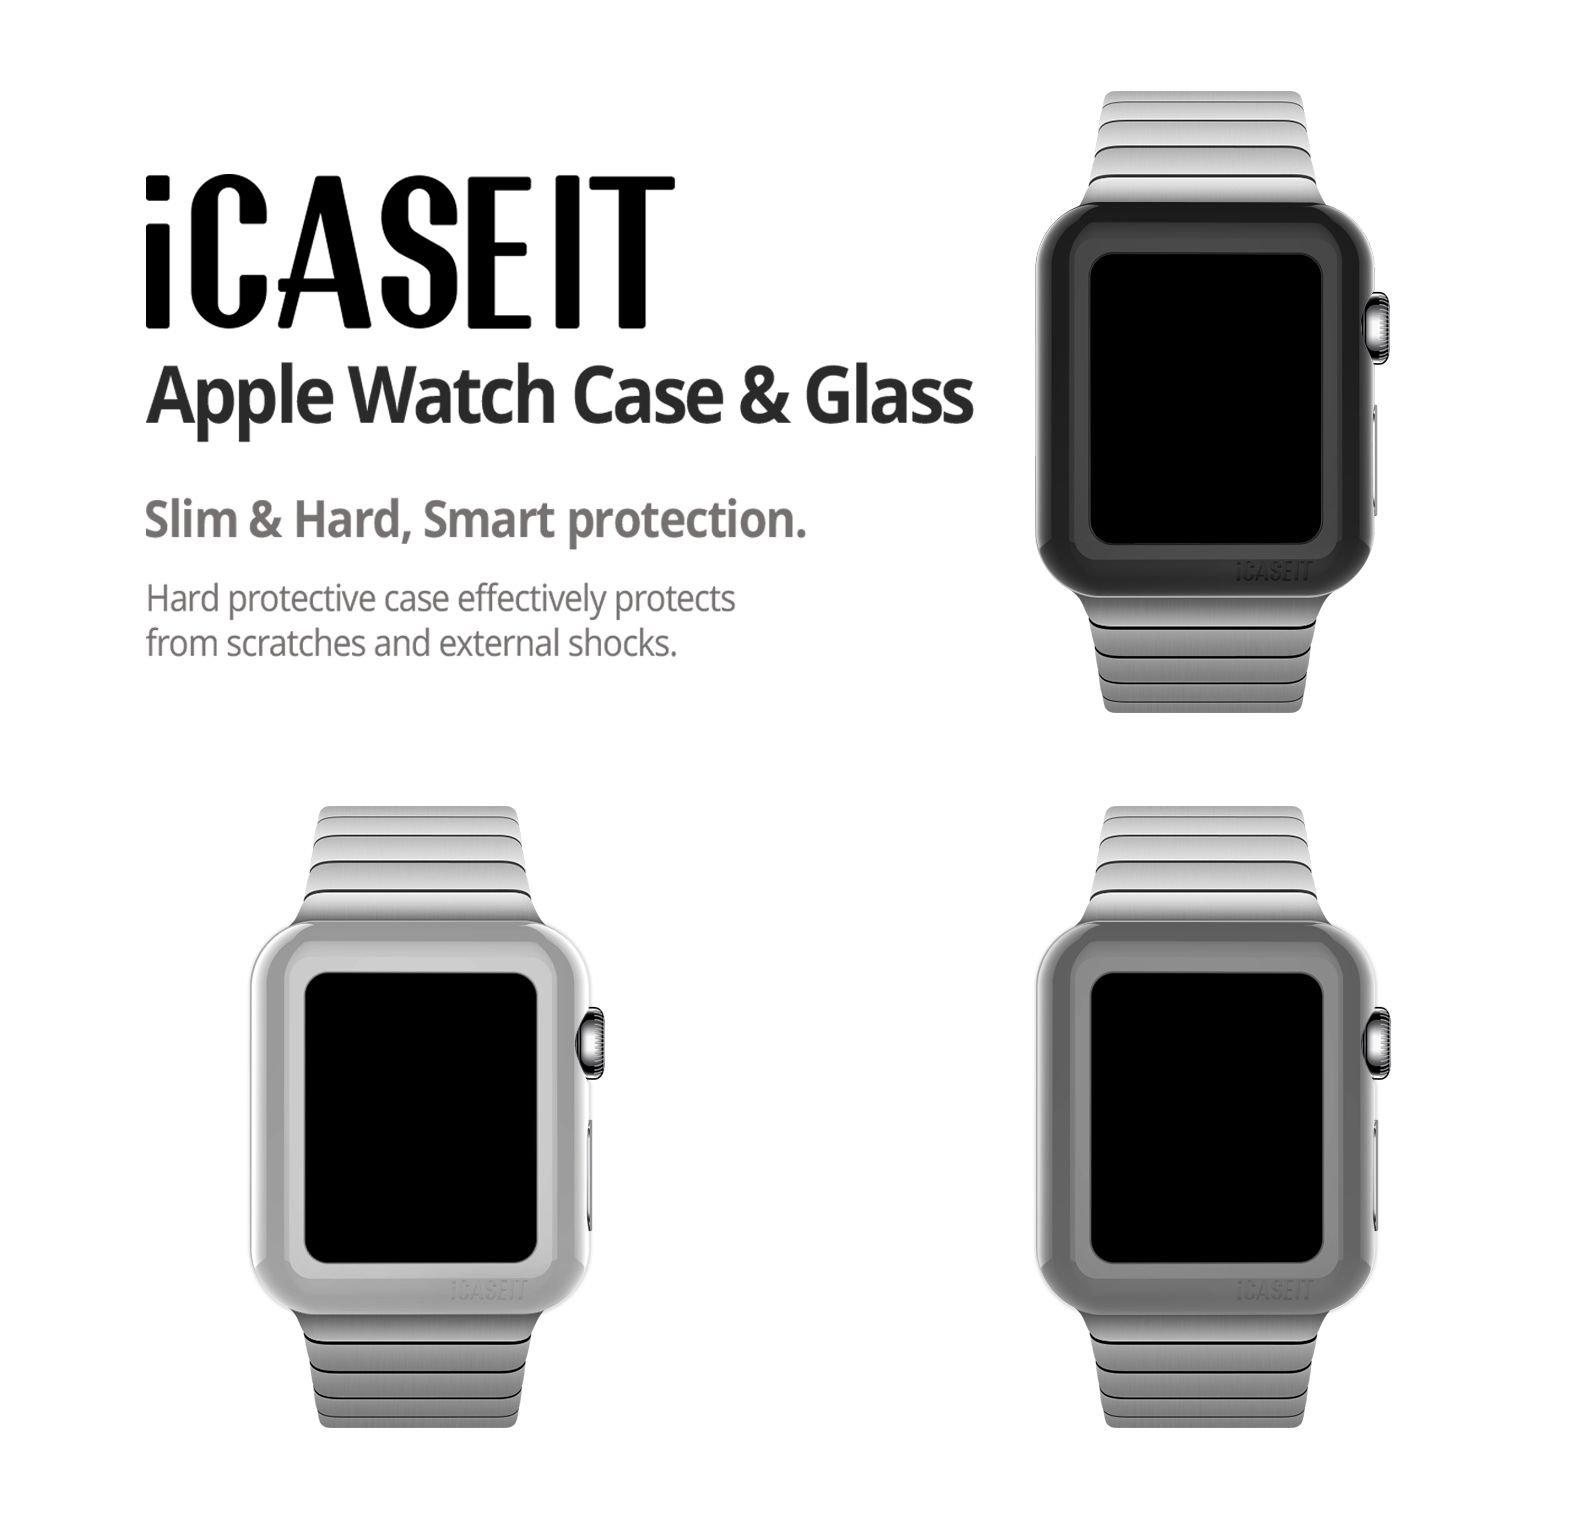 Apple Watch Case & Glass 38mm (Pack of 3)   Black, Silver & Gray